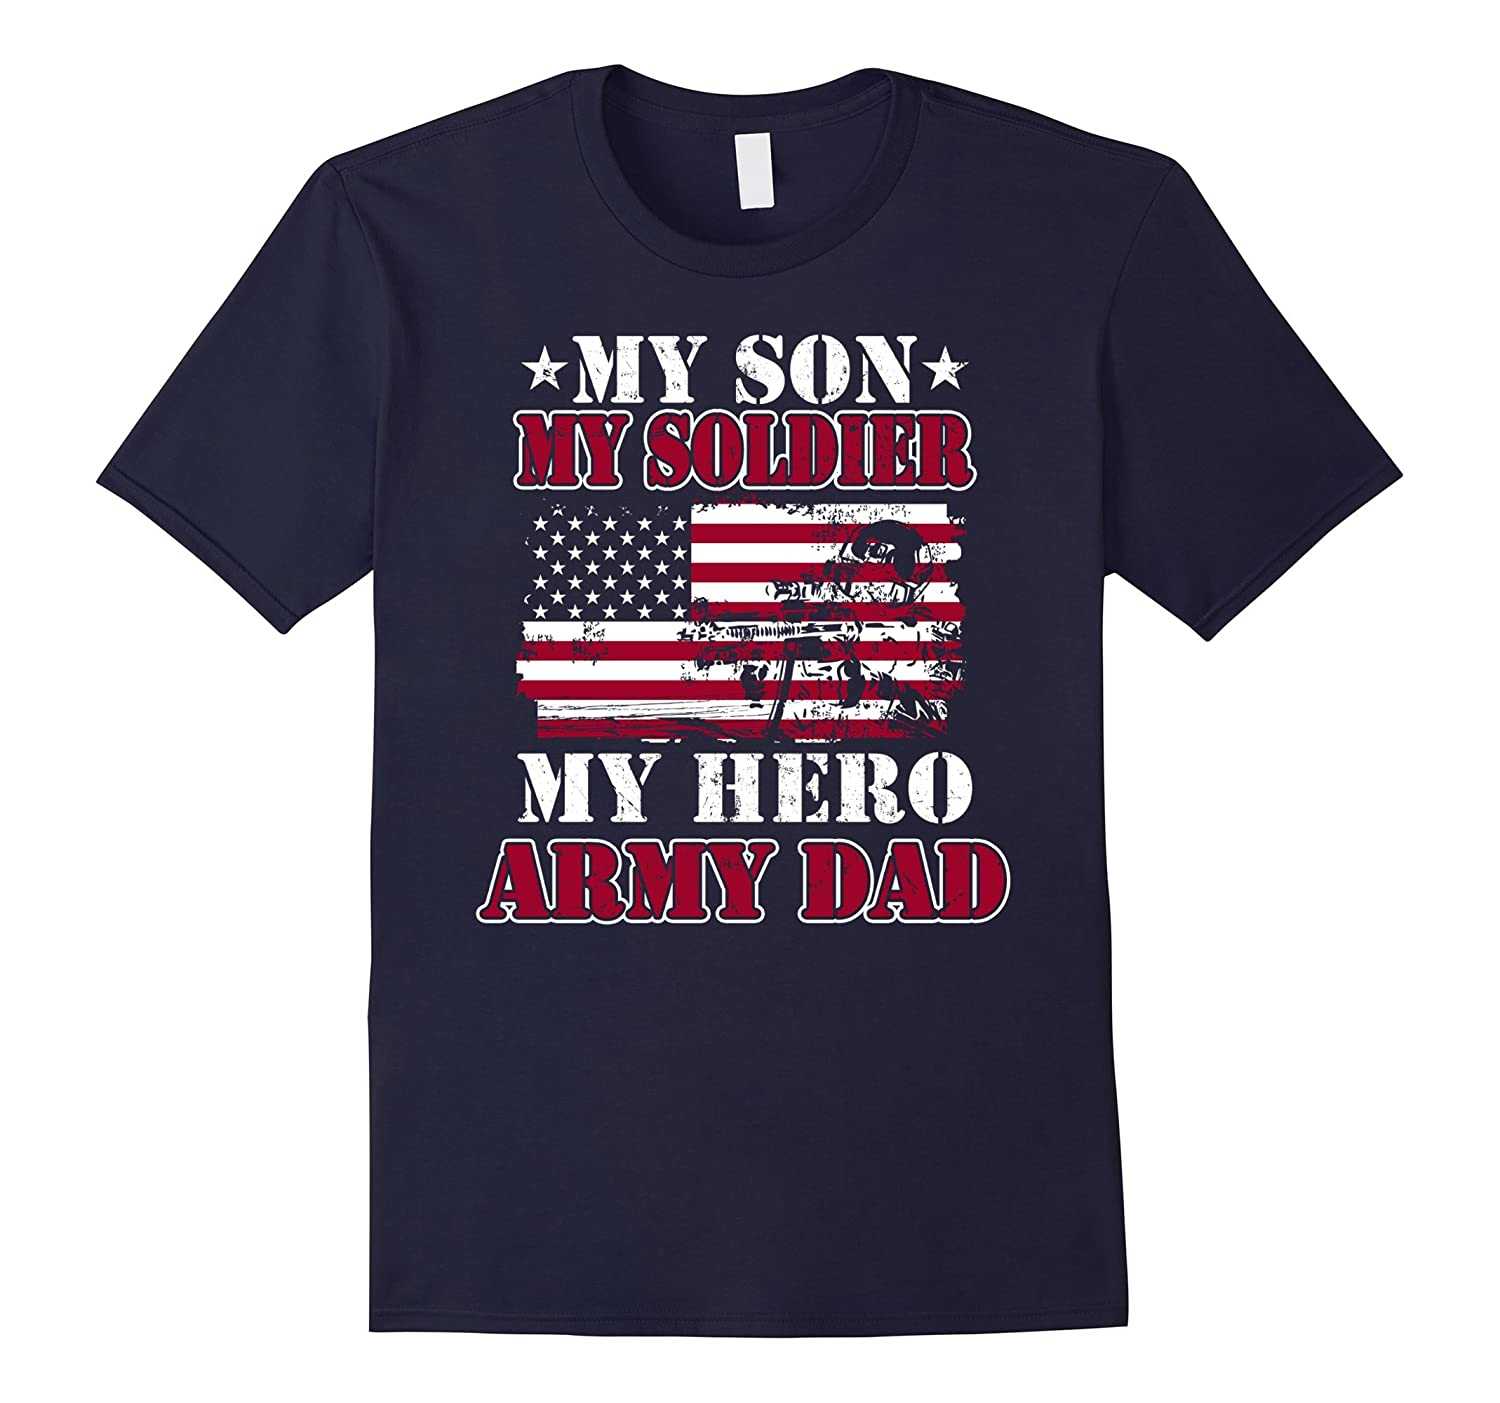 My Army Dad T-Shirt My Son-My Soldier-My Hero-US Soldier Tee-TD